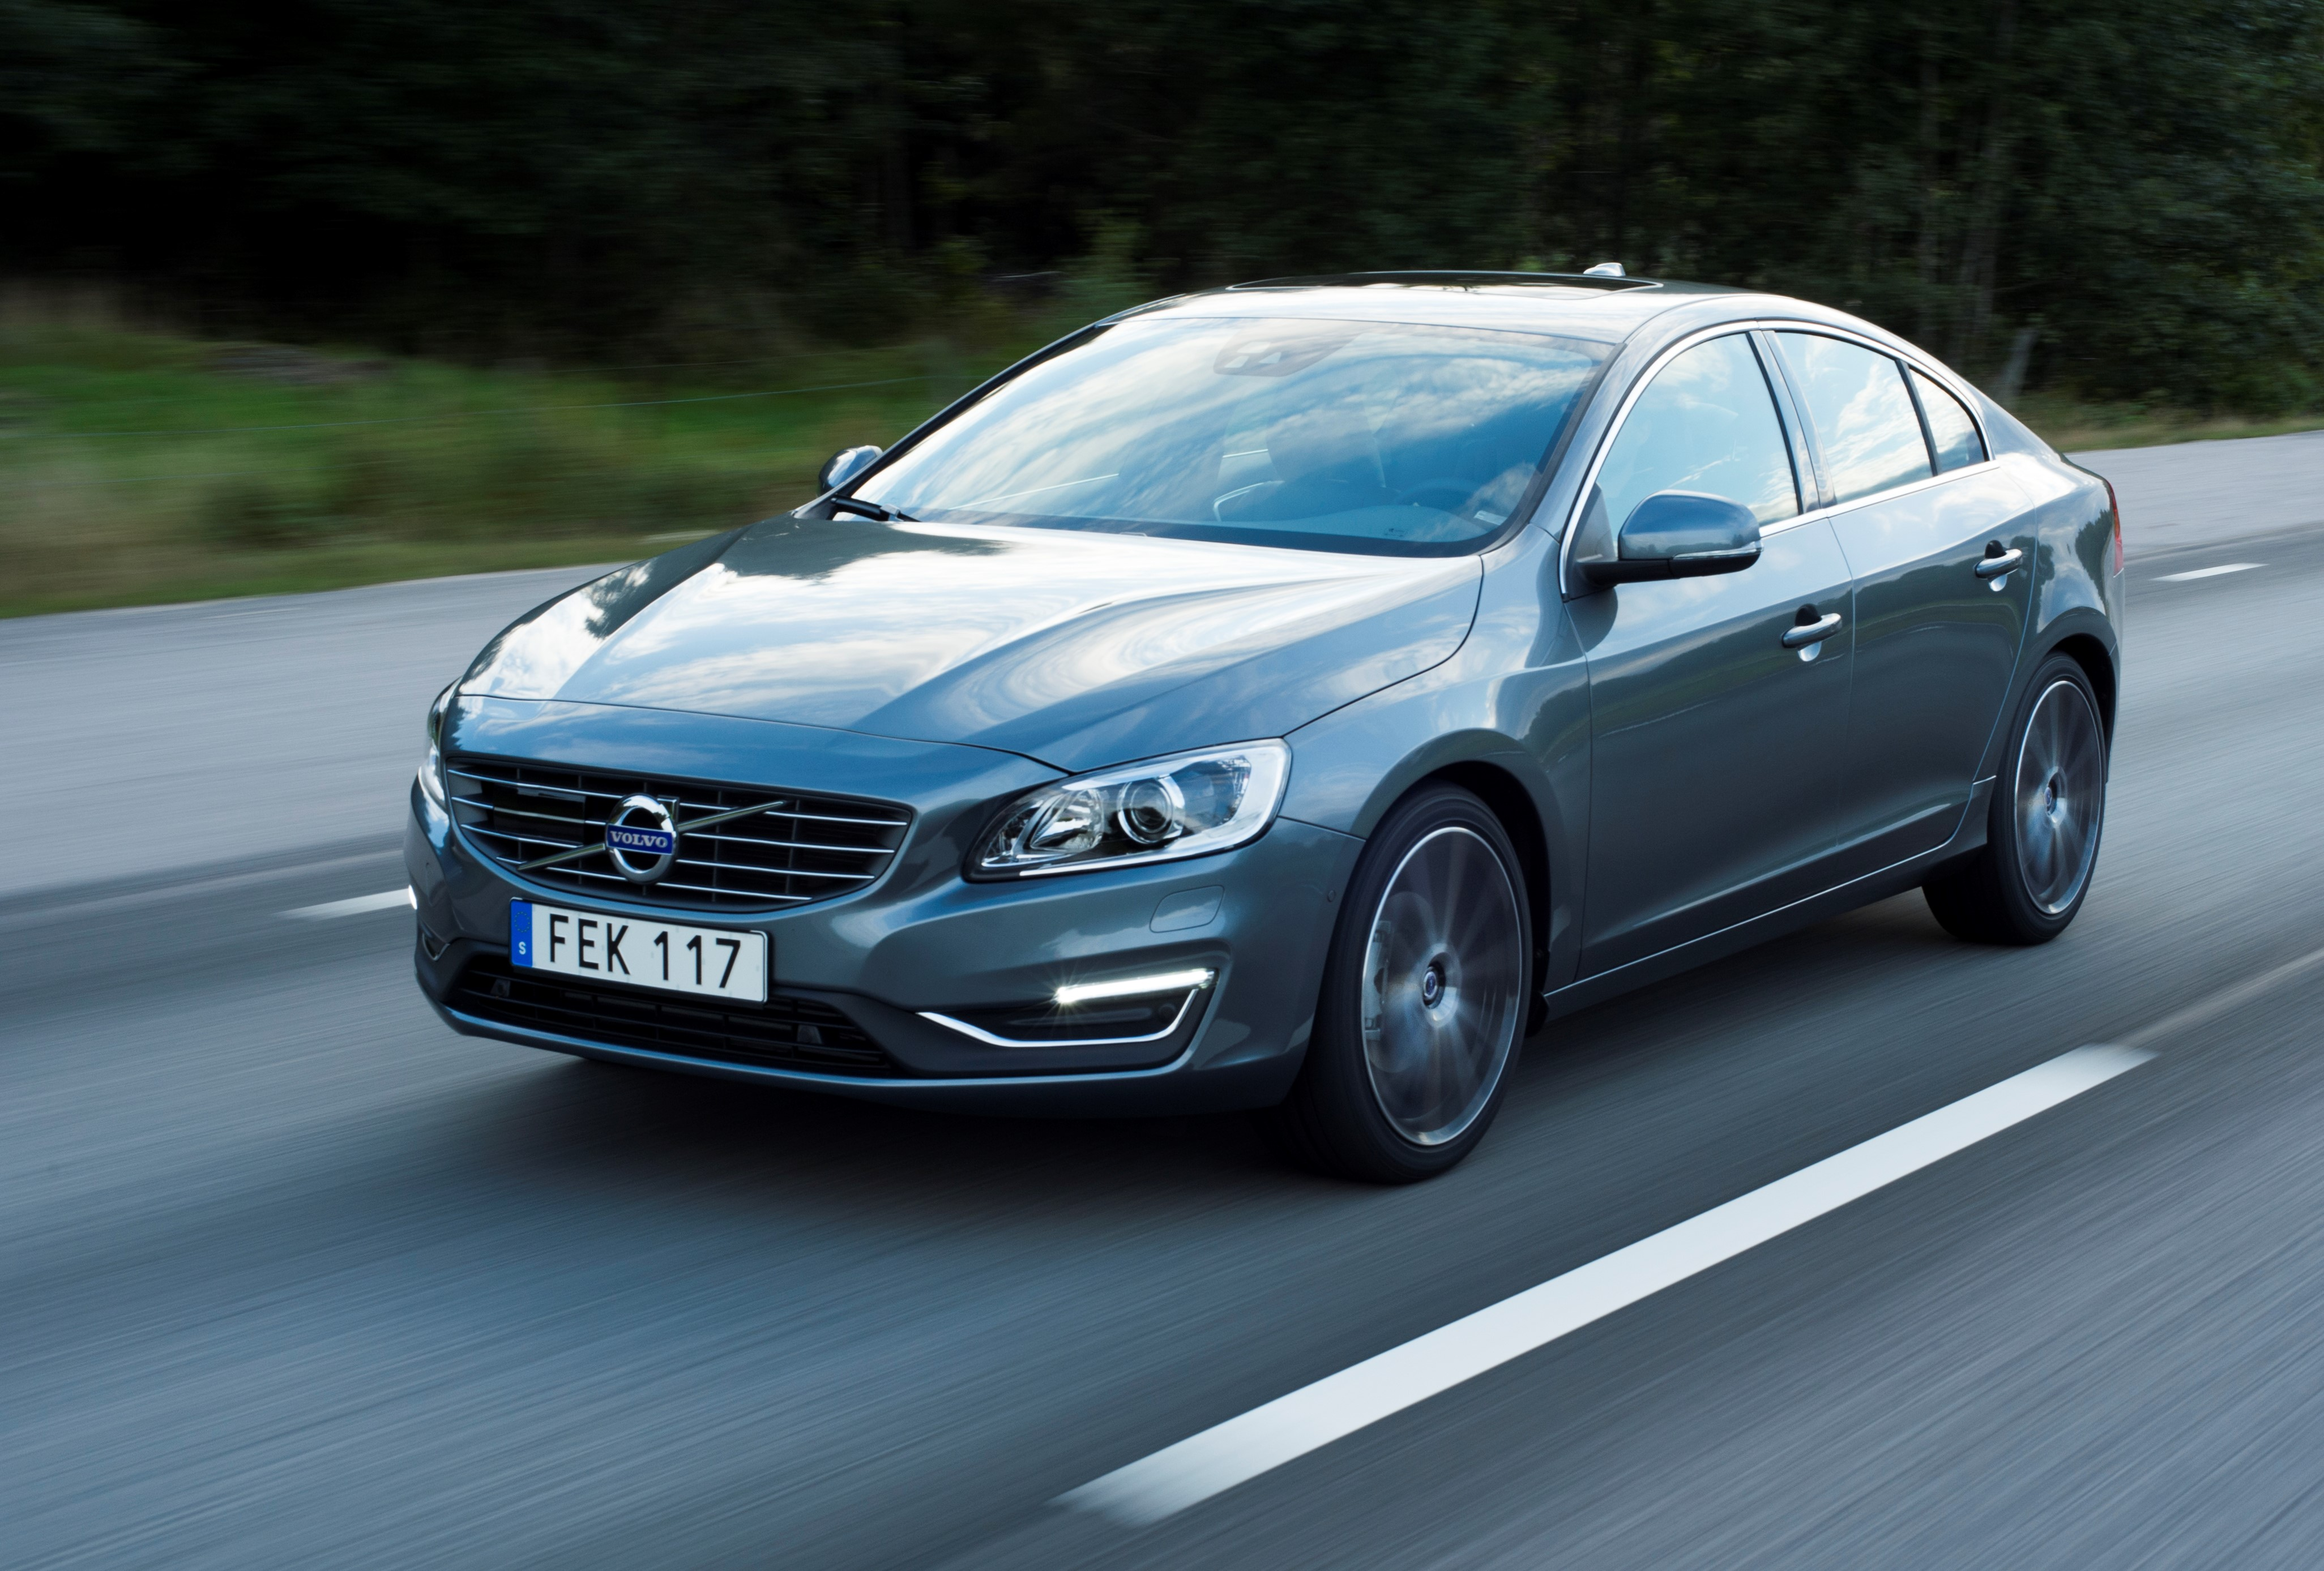 2017 volvo s60 awd review comfort safety performance. Black Bedroom Furniture Sets. Home Design Ideas